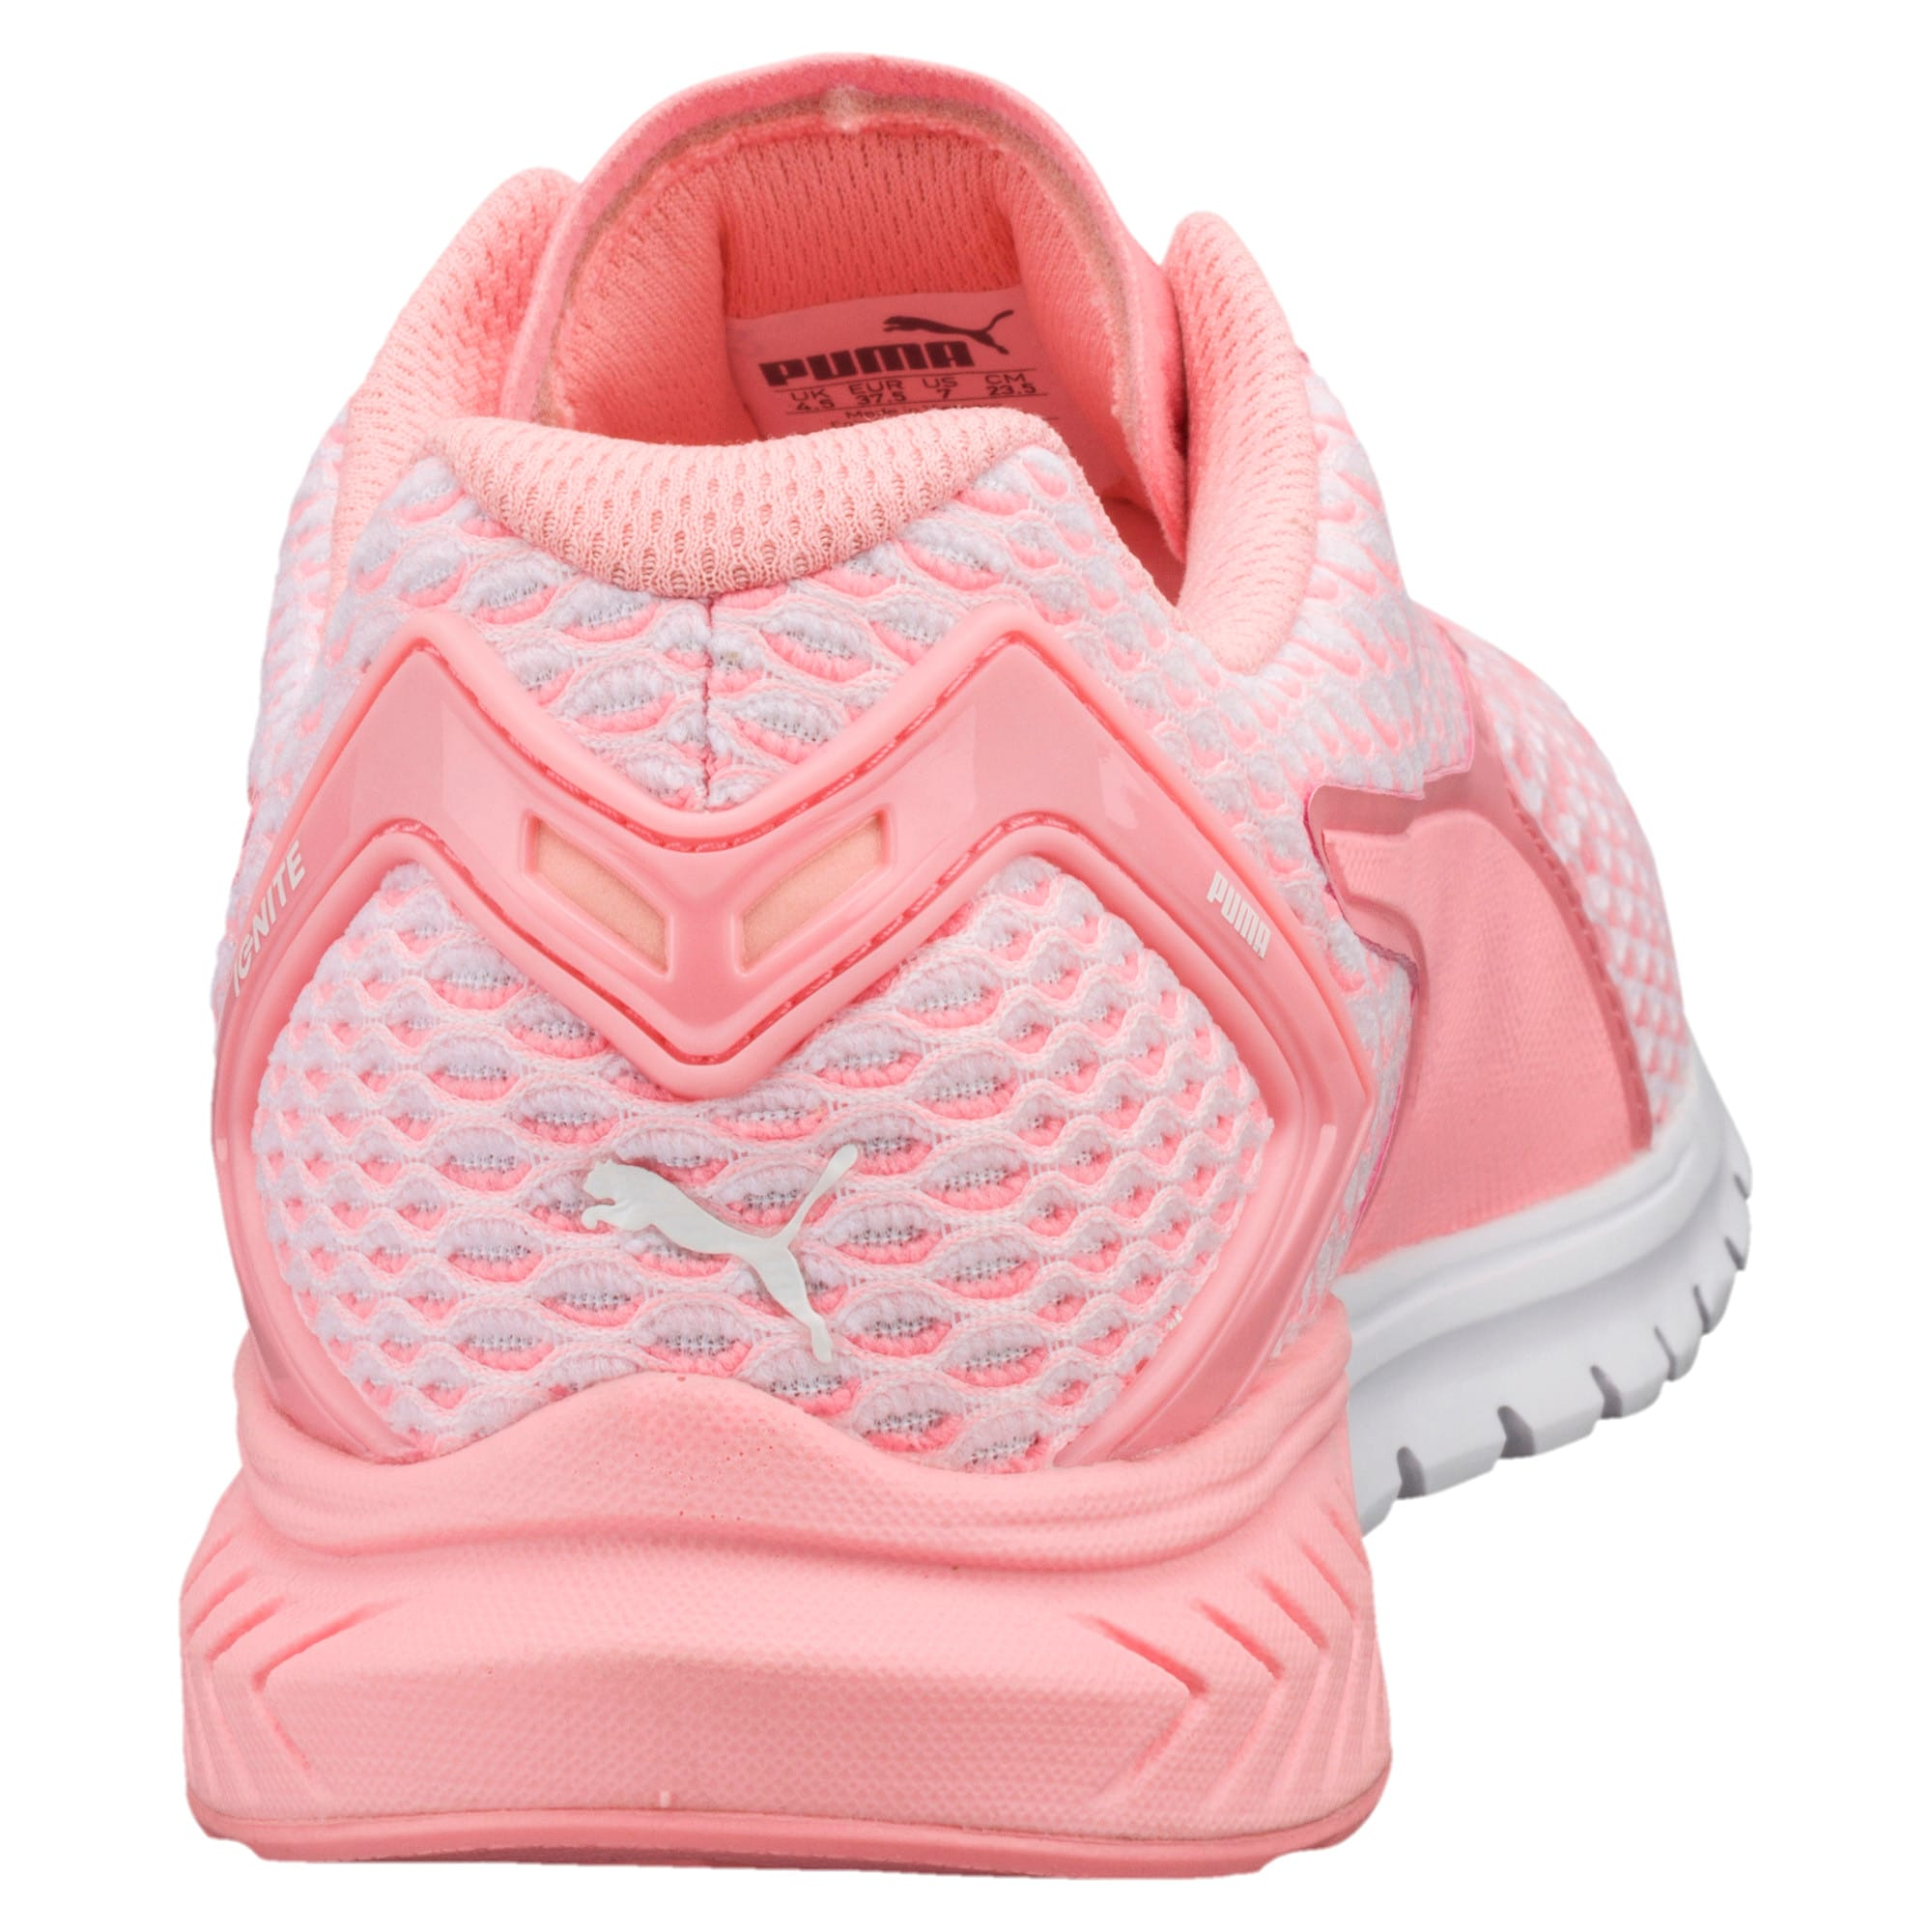 Thumbnail 3 of IGNITE Dual New Core Women's Training Shoes, SoftFluoPeach-White, medium-IND